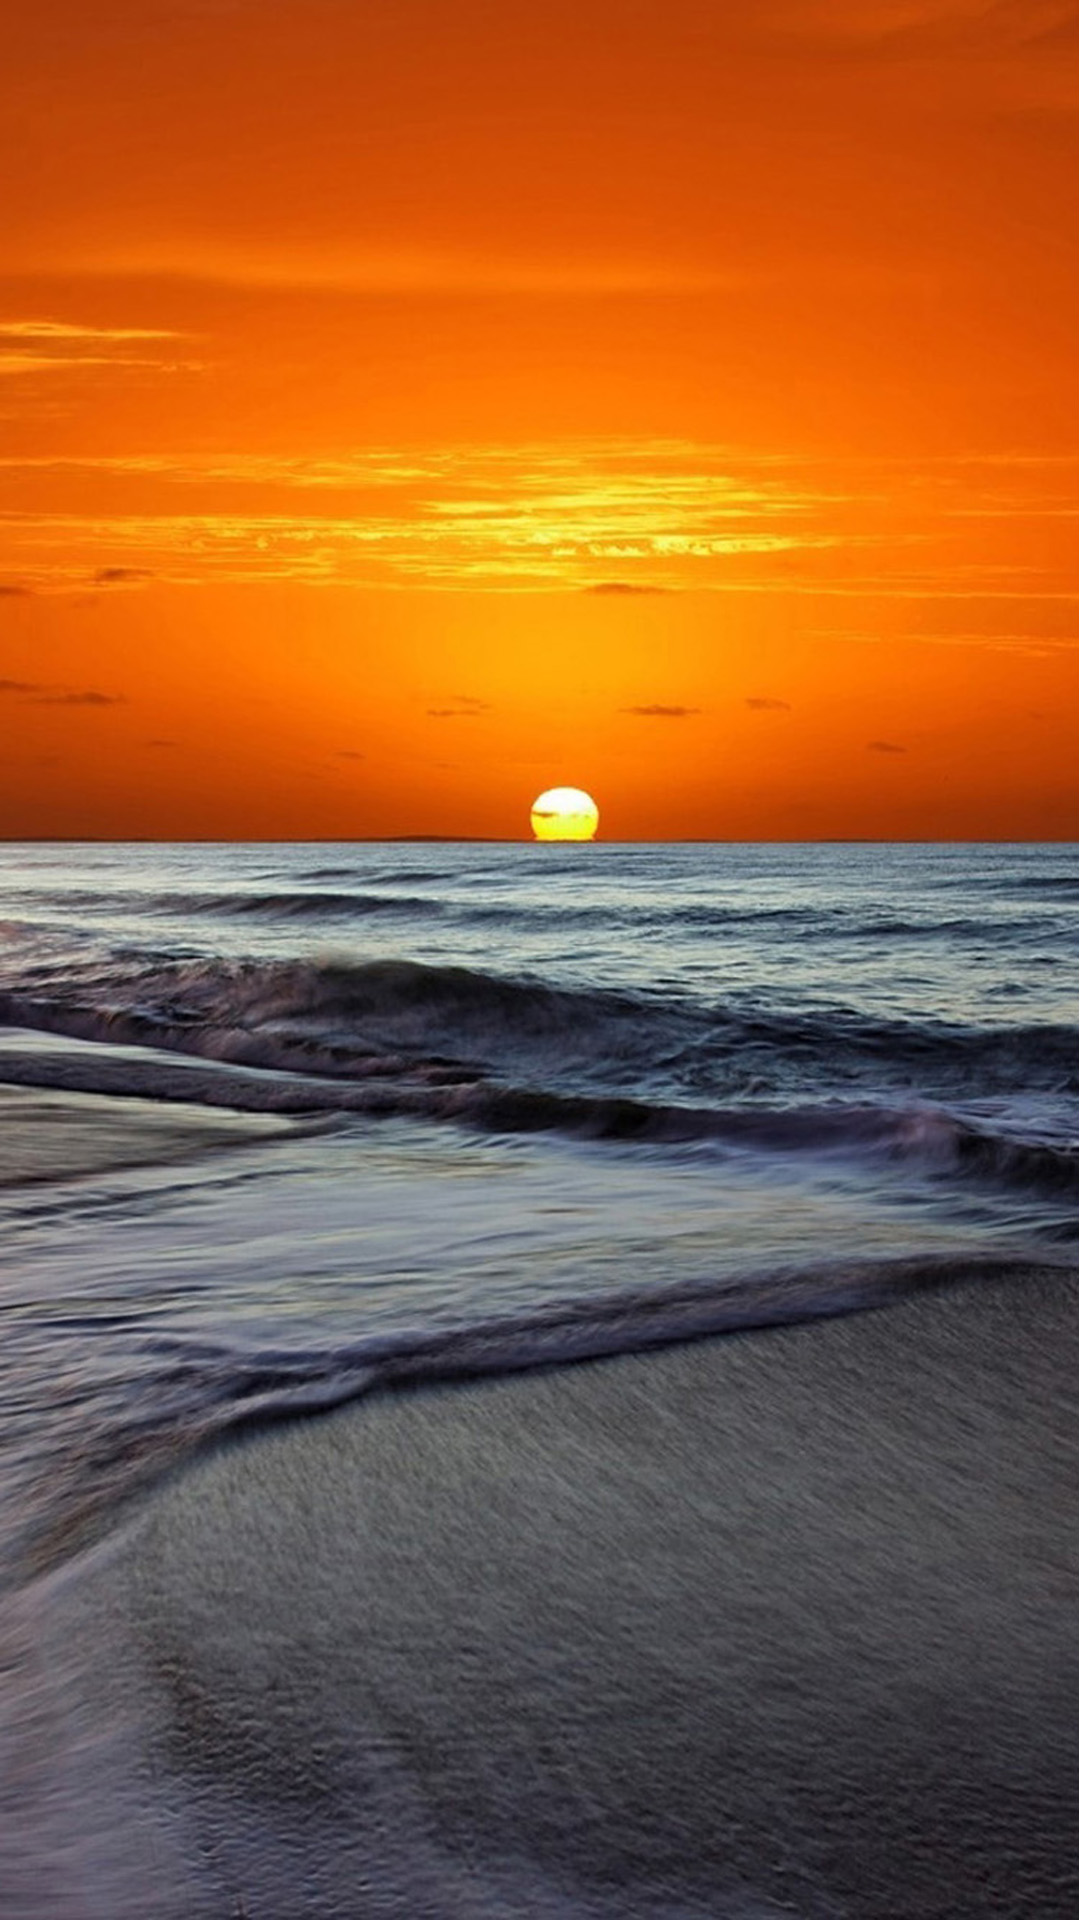 Sunset Beach Android wallpaper